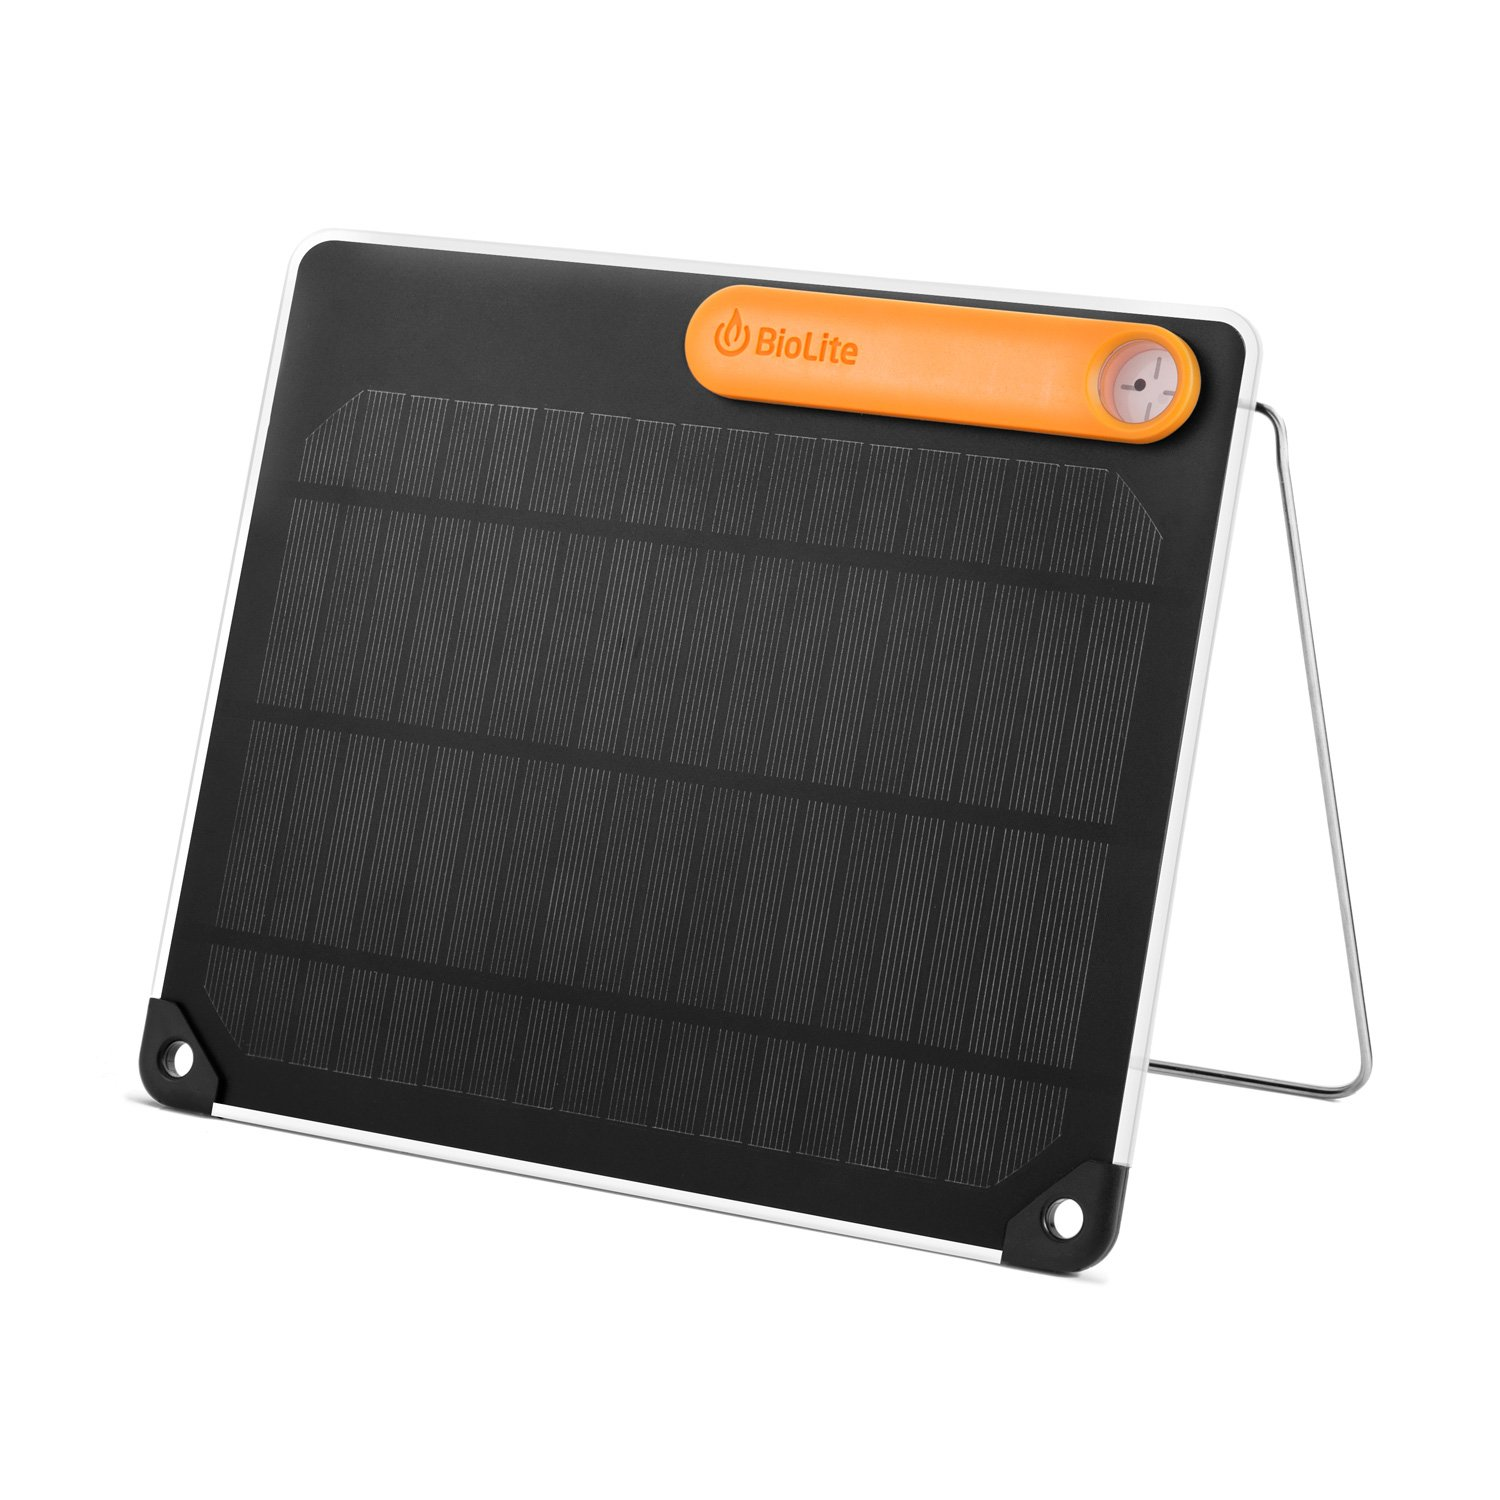 BioLite SolarPanel5 - Includes Solar Panel with 5 Watt USB Output, Solar Panel Battery Charger For On-Demand Light and Energy, 0.26 x 10.1 x 8.2 Inches, Black/Yellow (SPB1101)